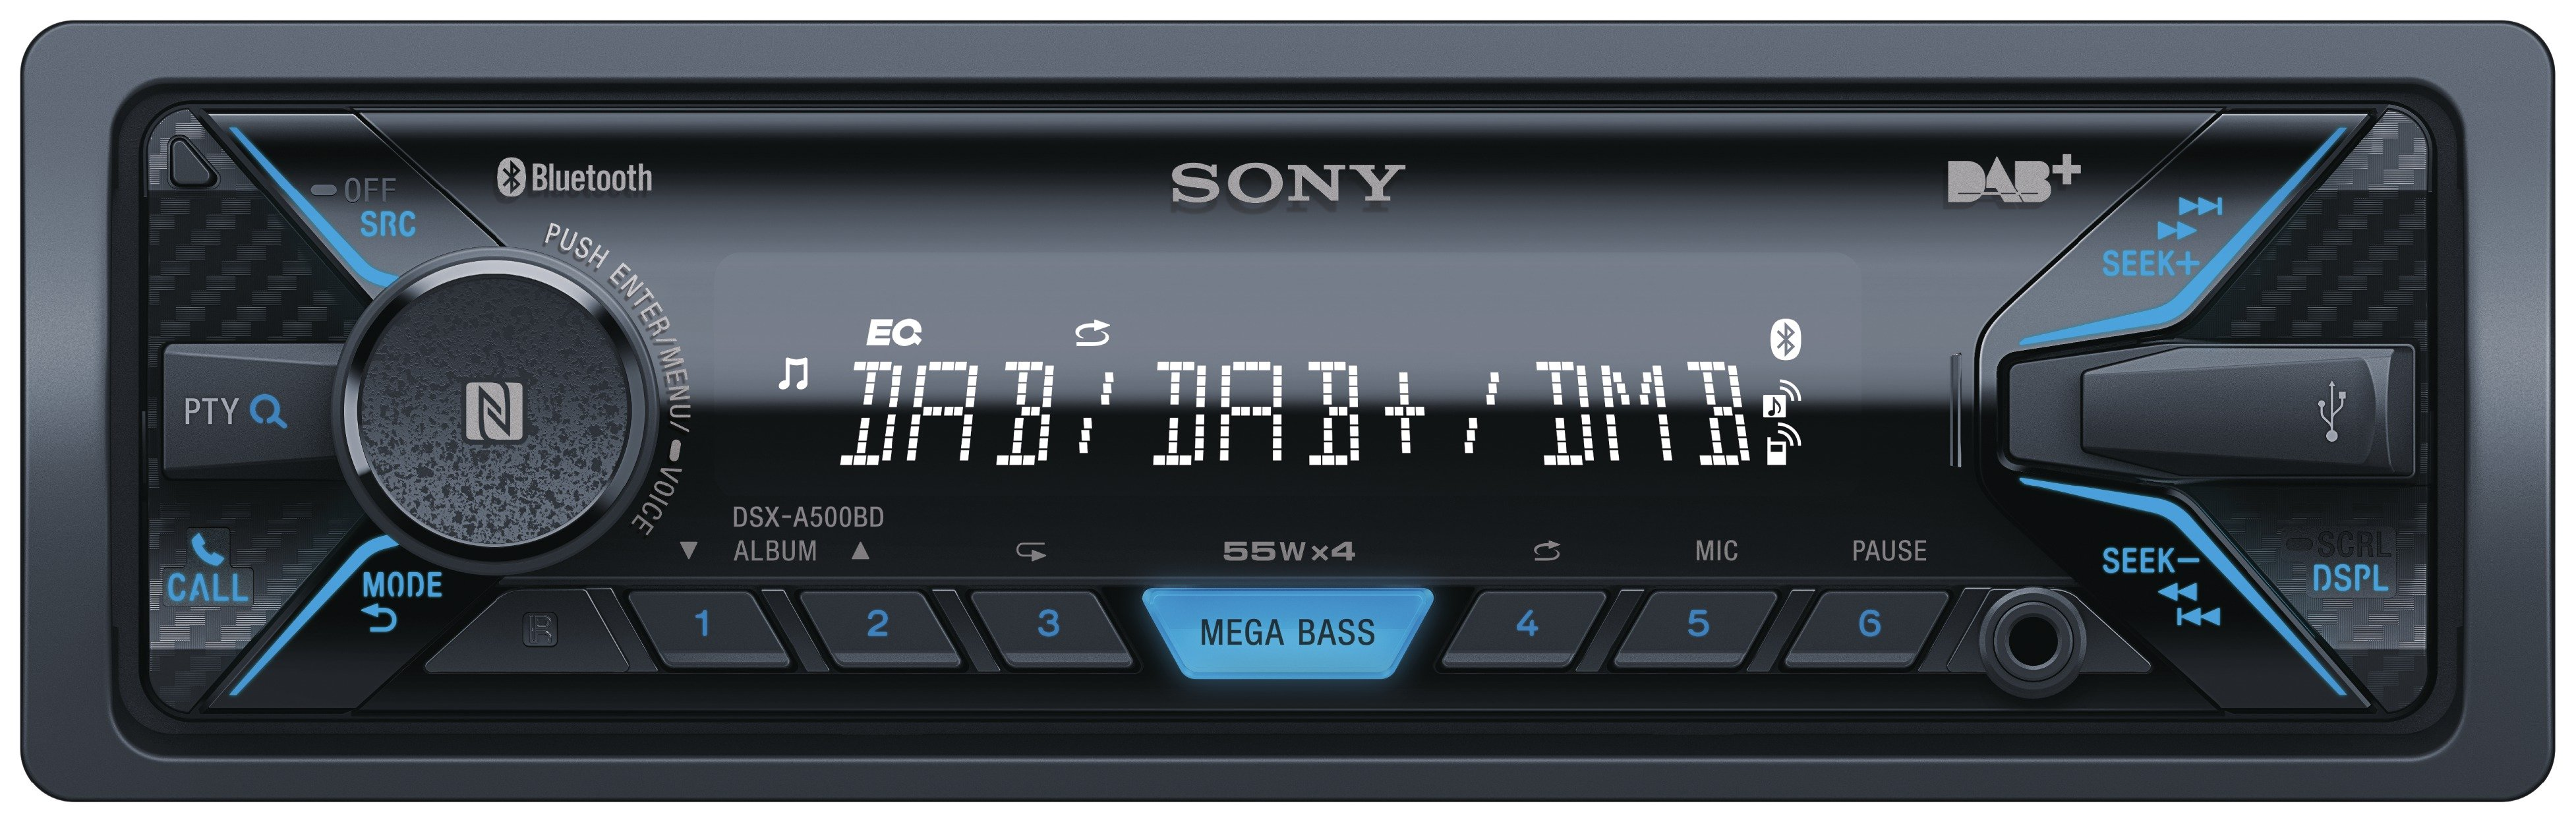 Sony DSX-A500 DAB Bluetooth Car Stereo.